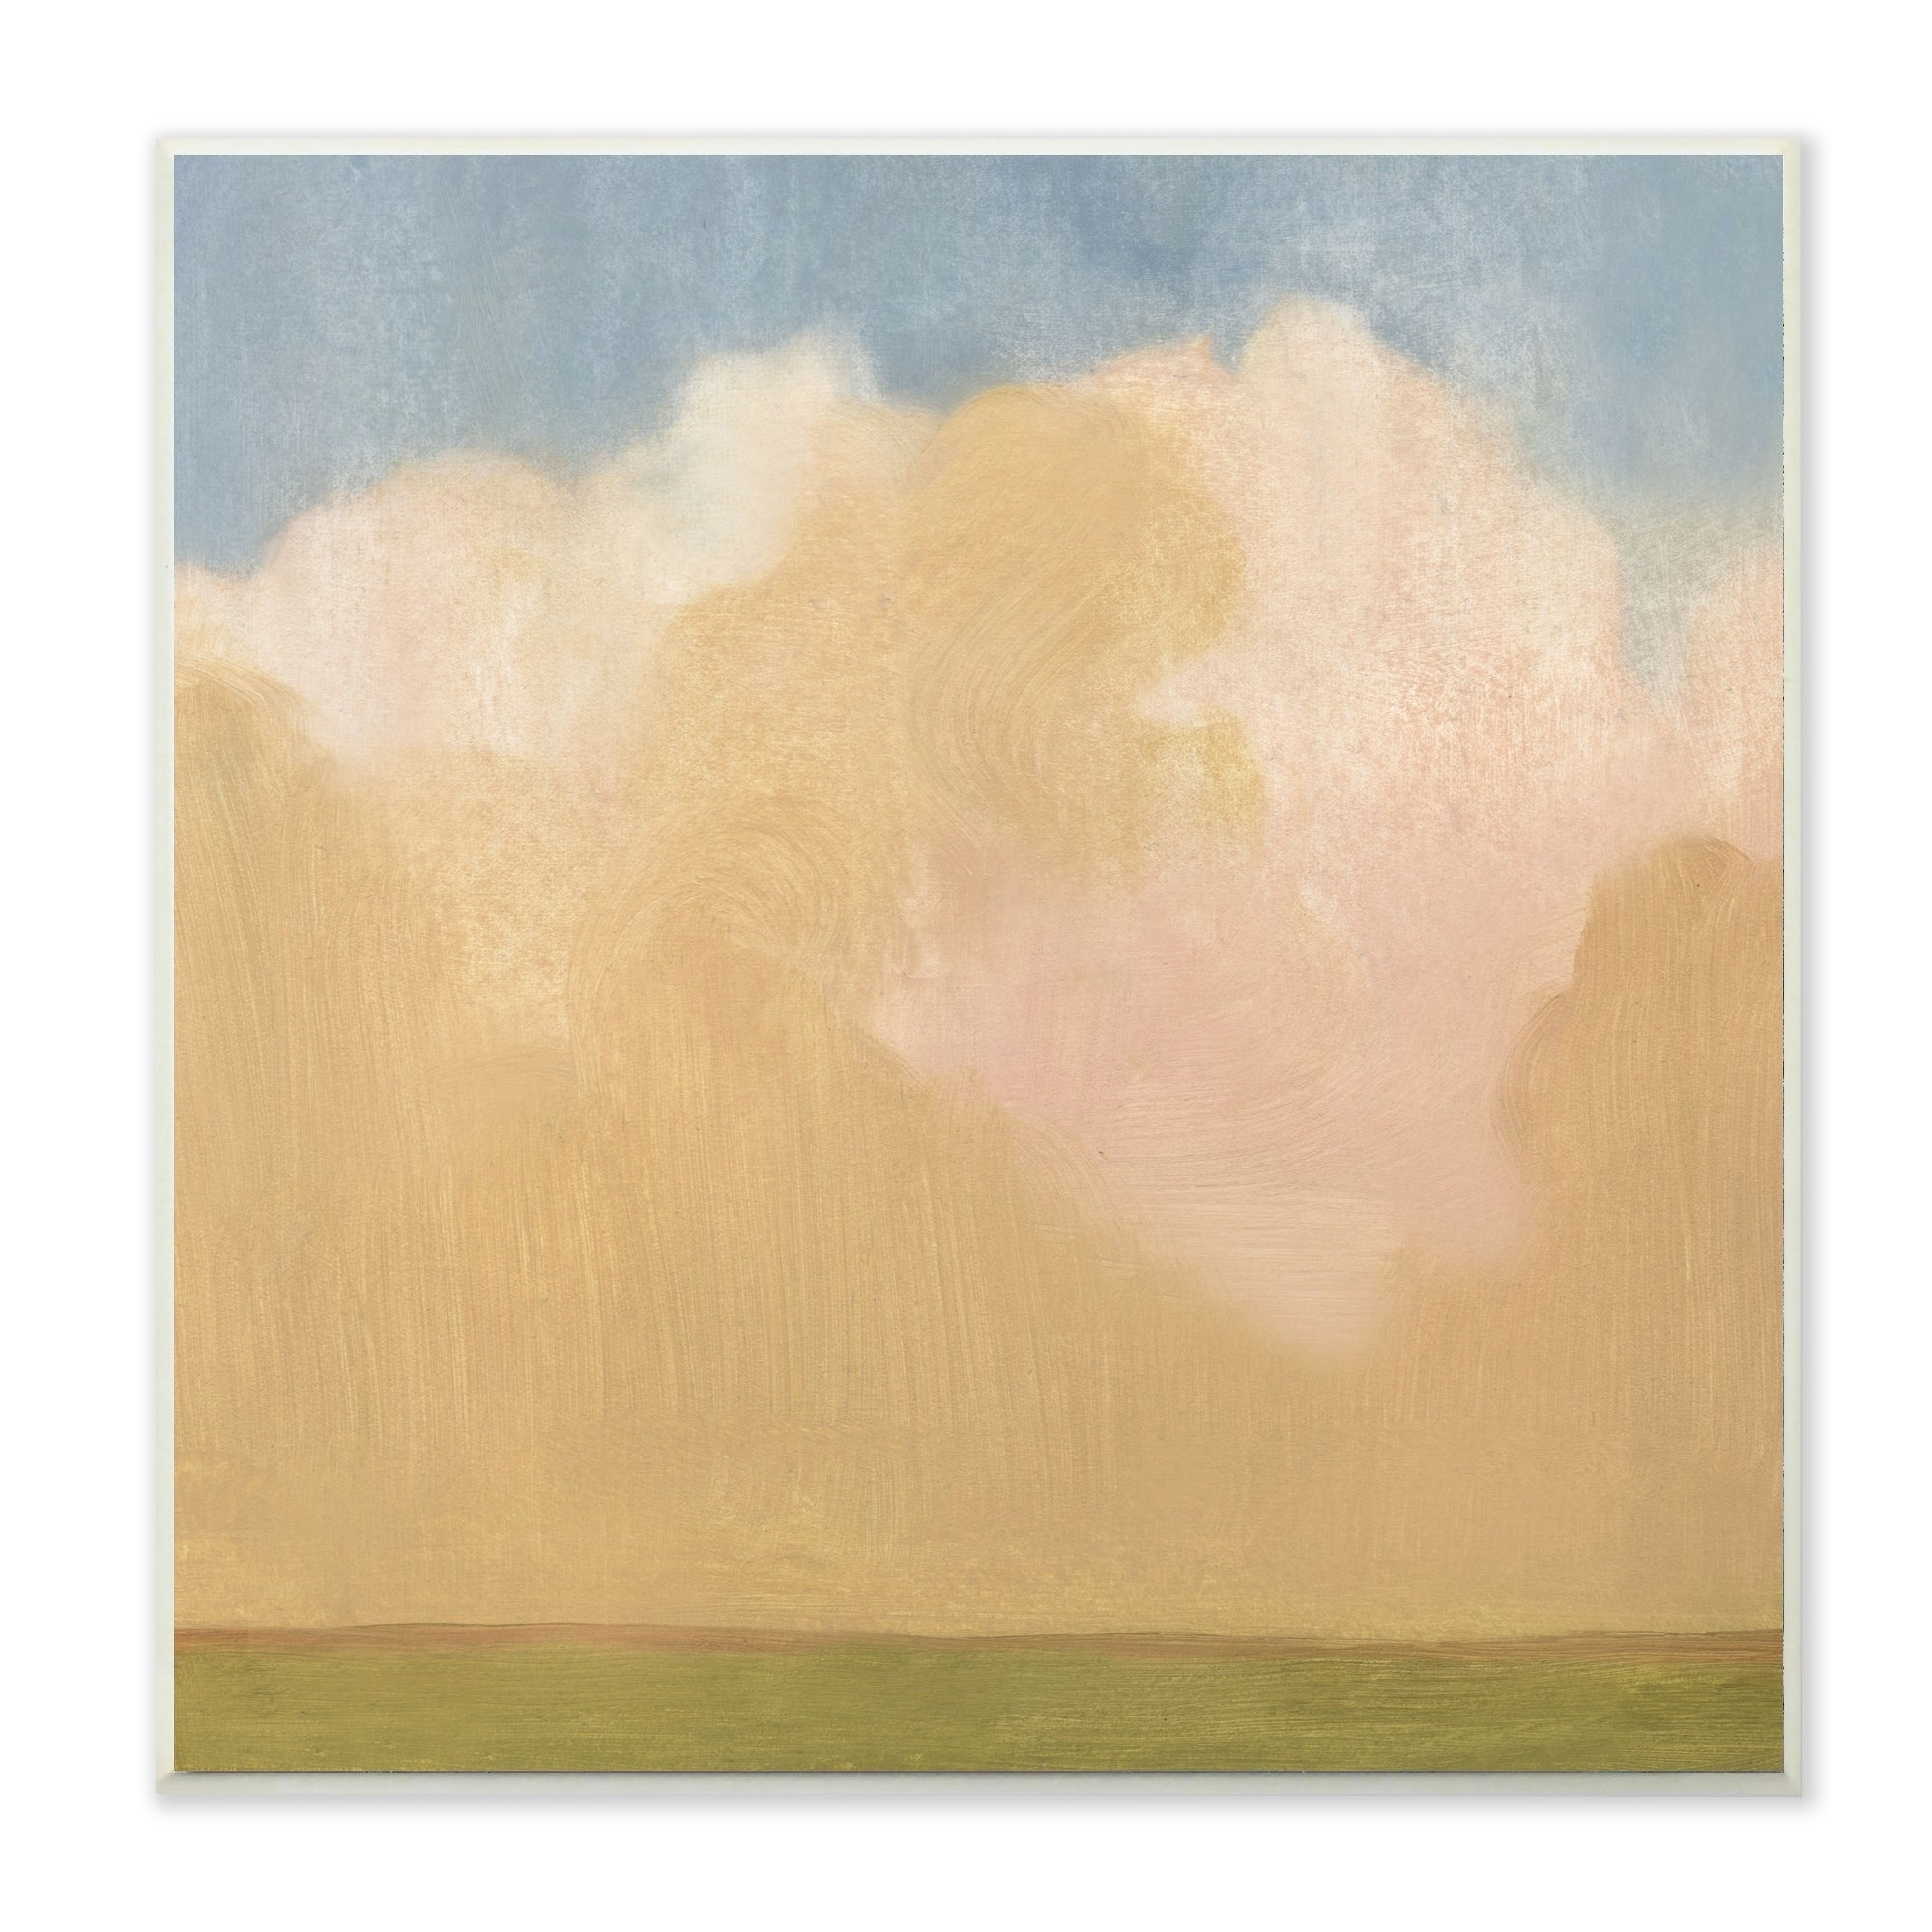 The Stupell Home Decor Collection Painted Fields Clouds Farm Wall ...